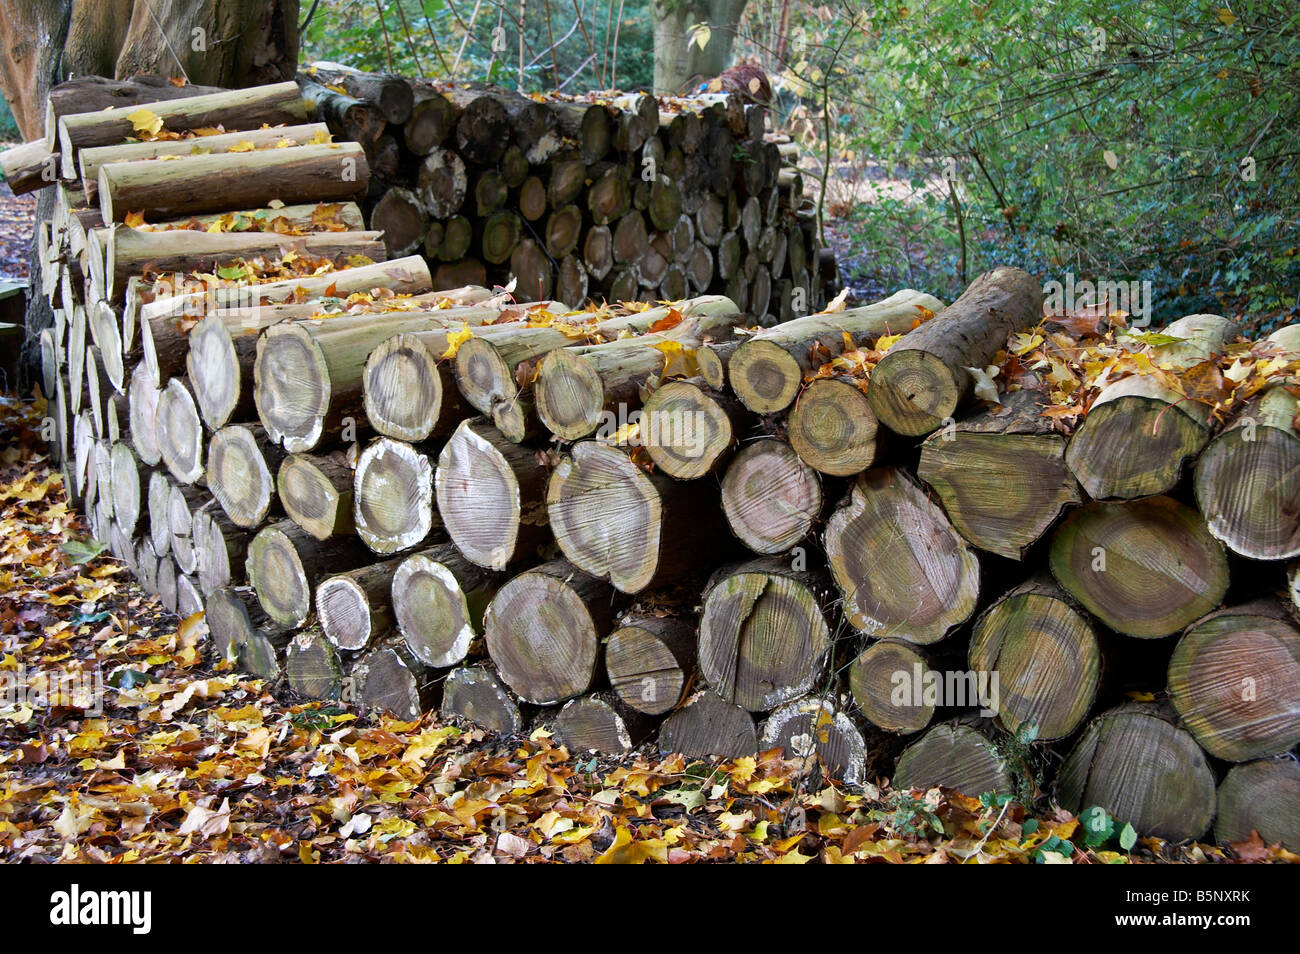 stack of logs at Ness Gardens, England - Stock Image